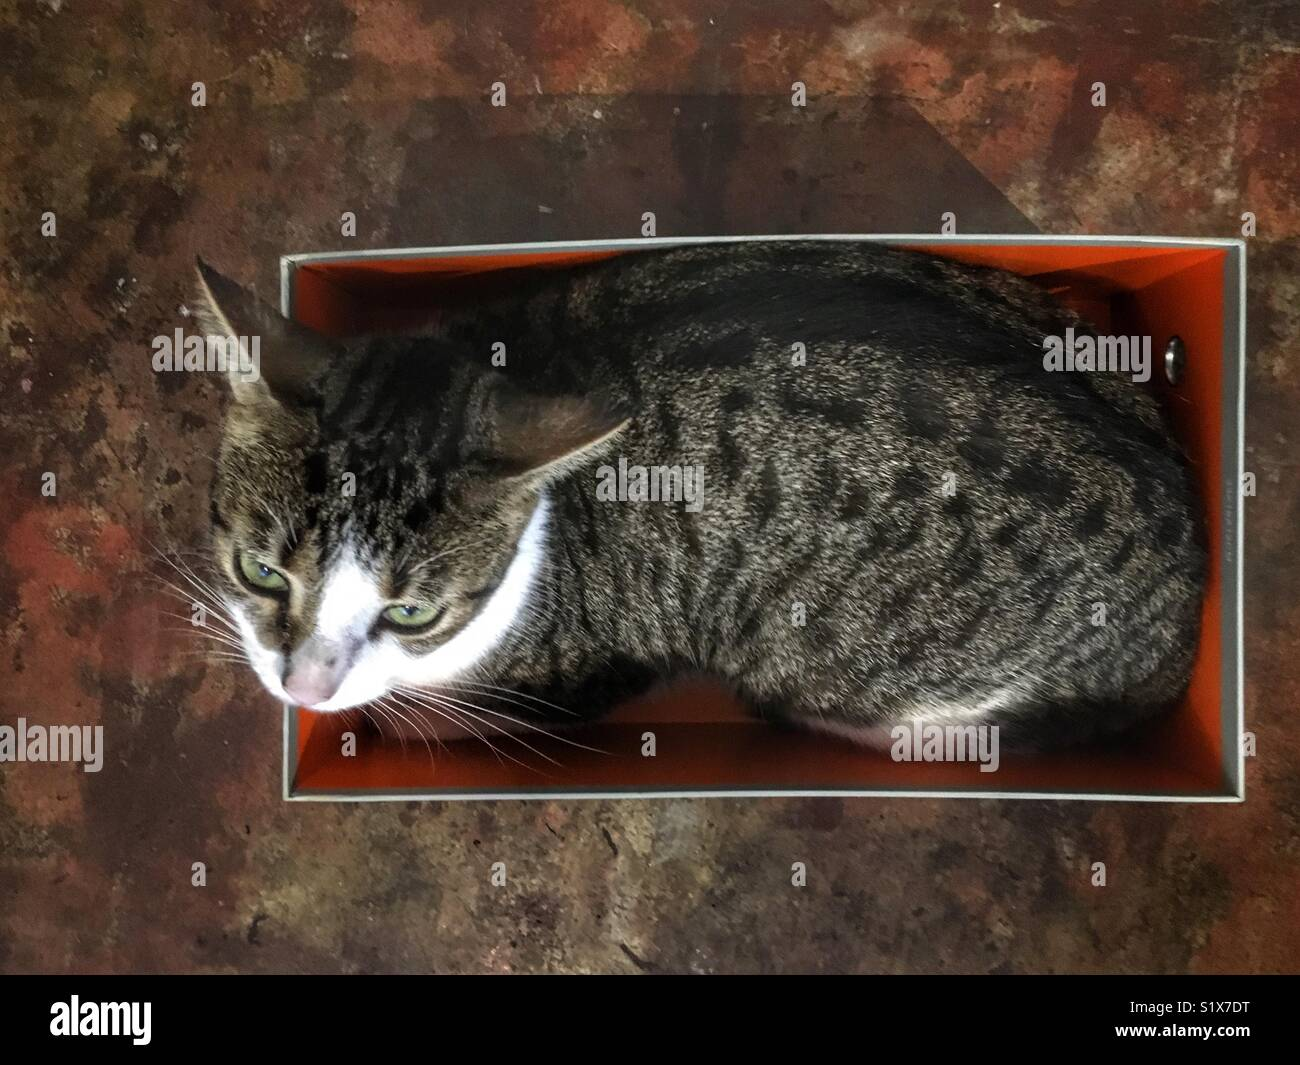 Cat in a shoebox. - Stock Image